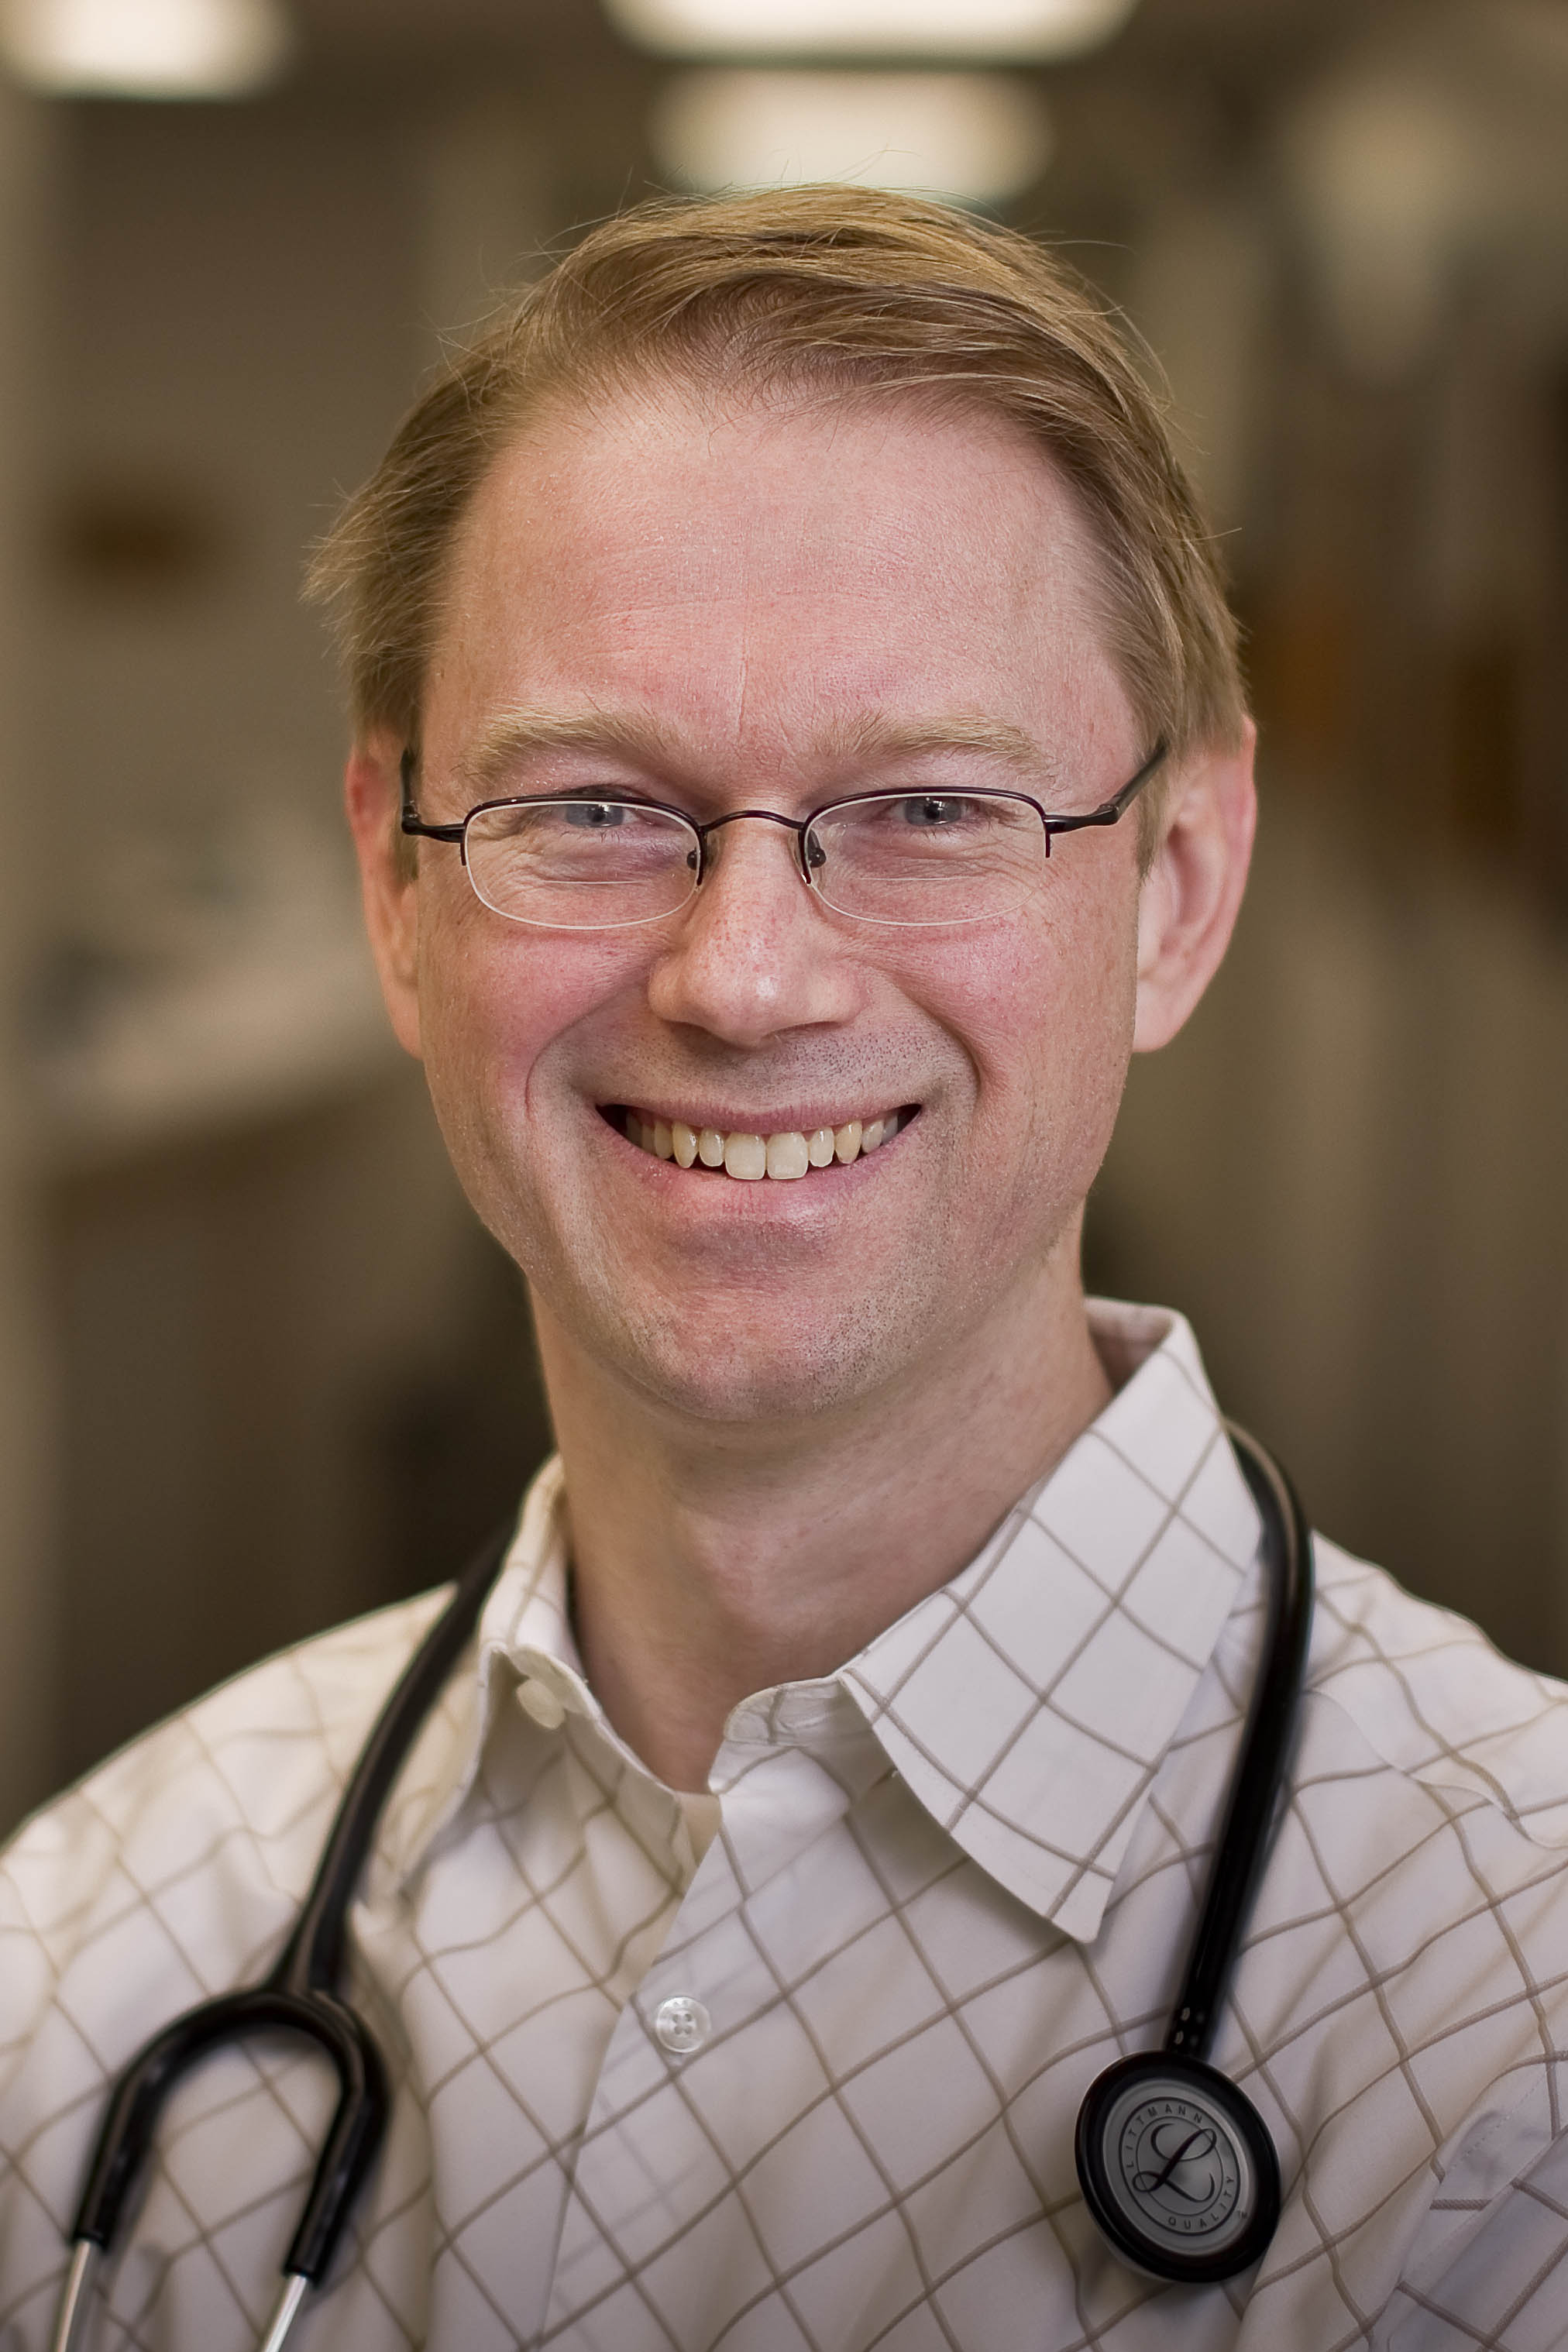 Robert H Ziegler, MD